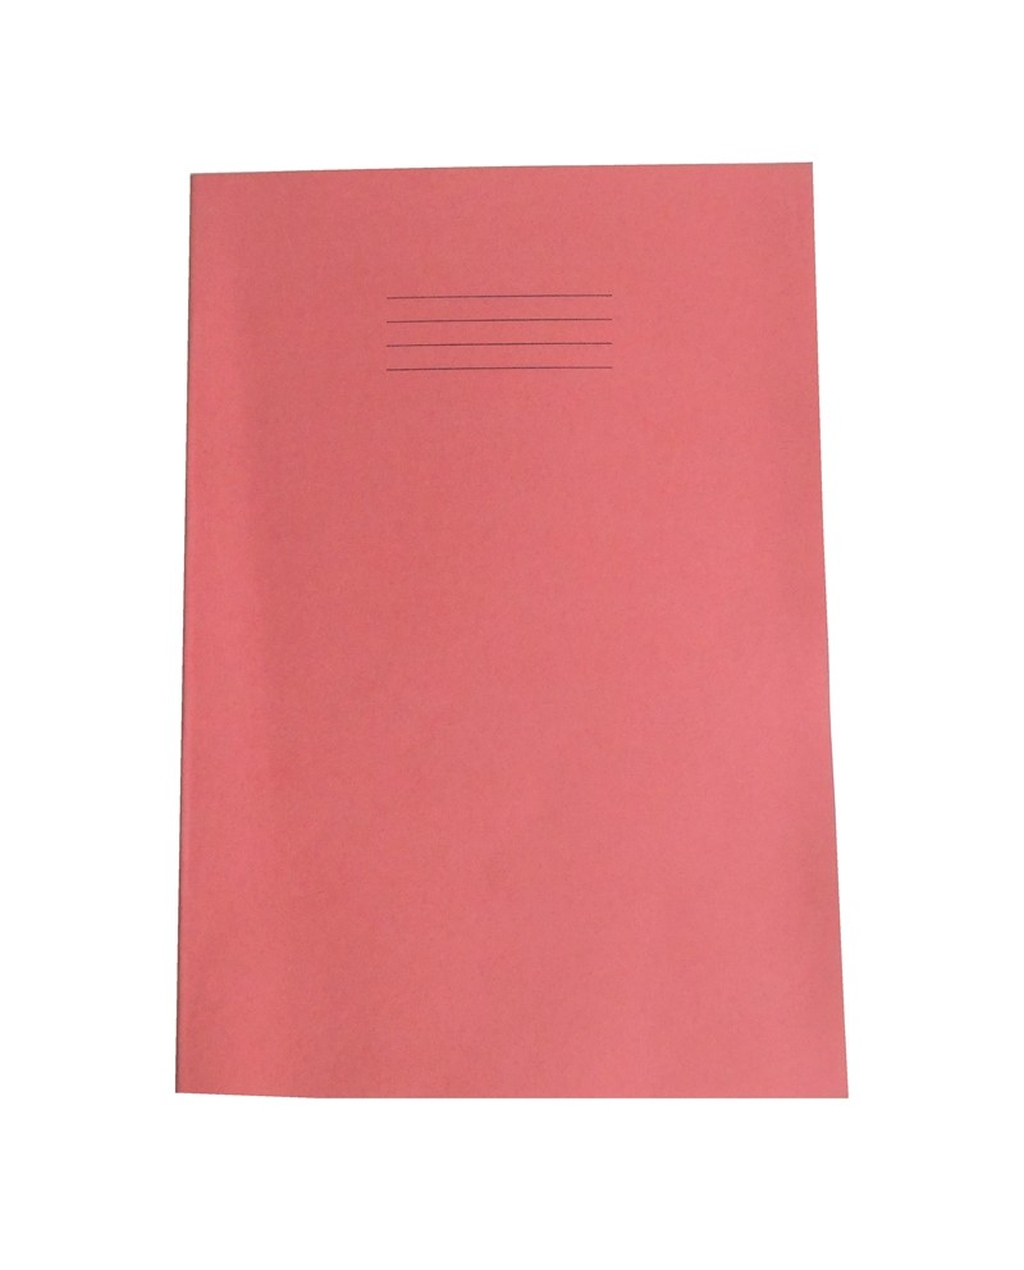 Exercise Book A4+ size (330 x 250mm) Red Cover 8mm Ruled 40 Pages